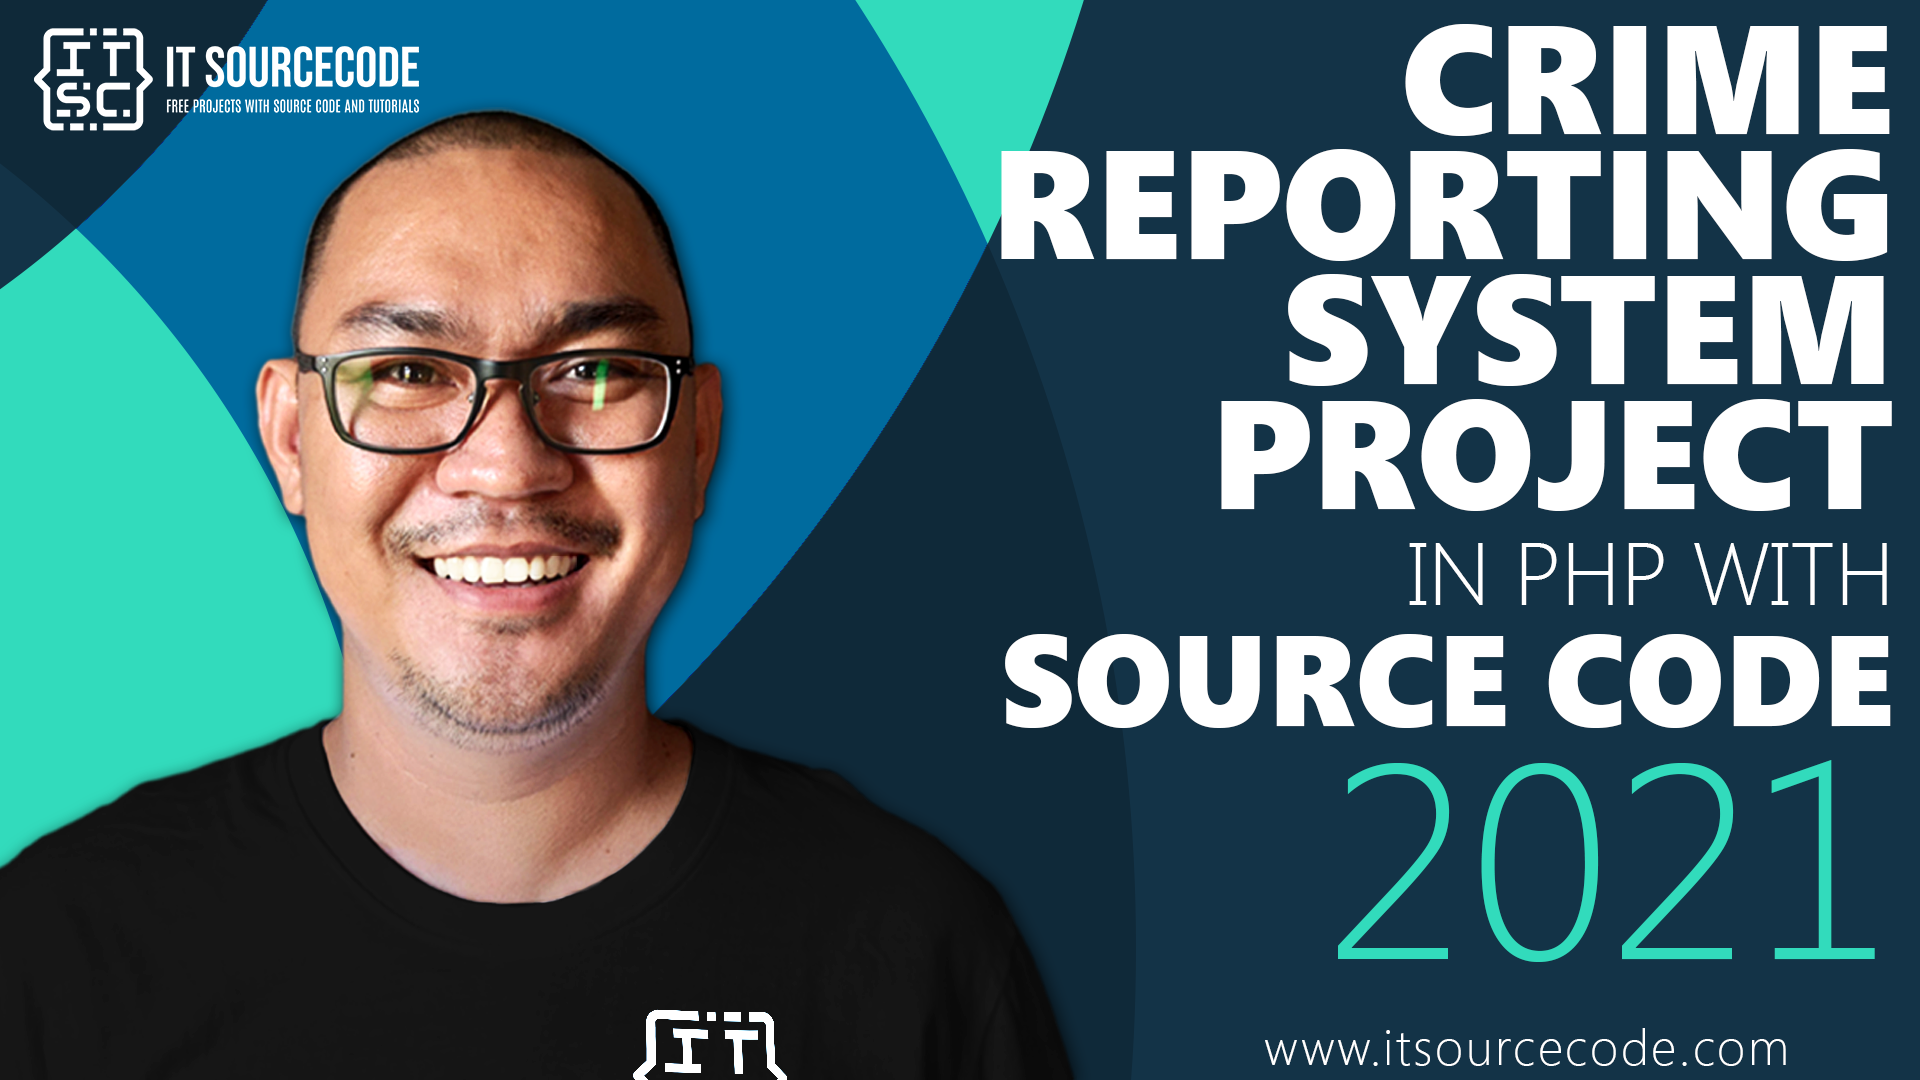 Crime Reporting System Project In PHP With Source Code